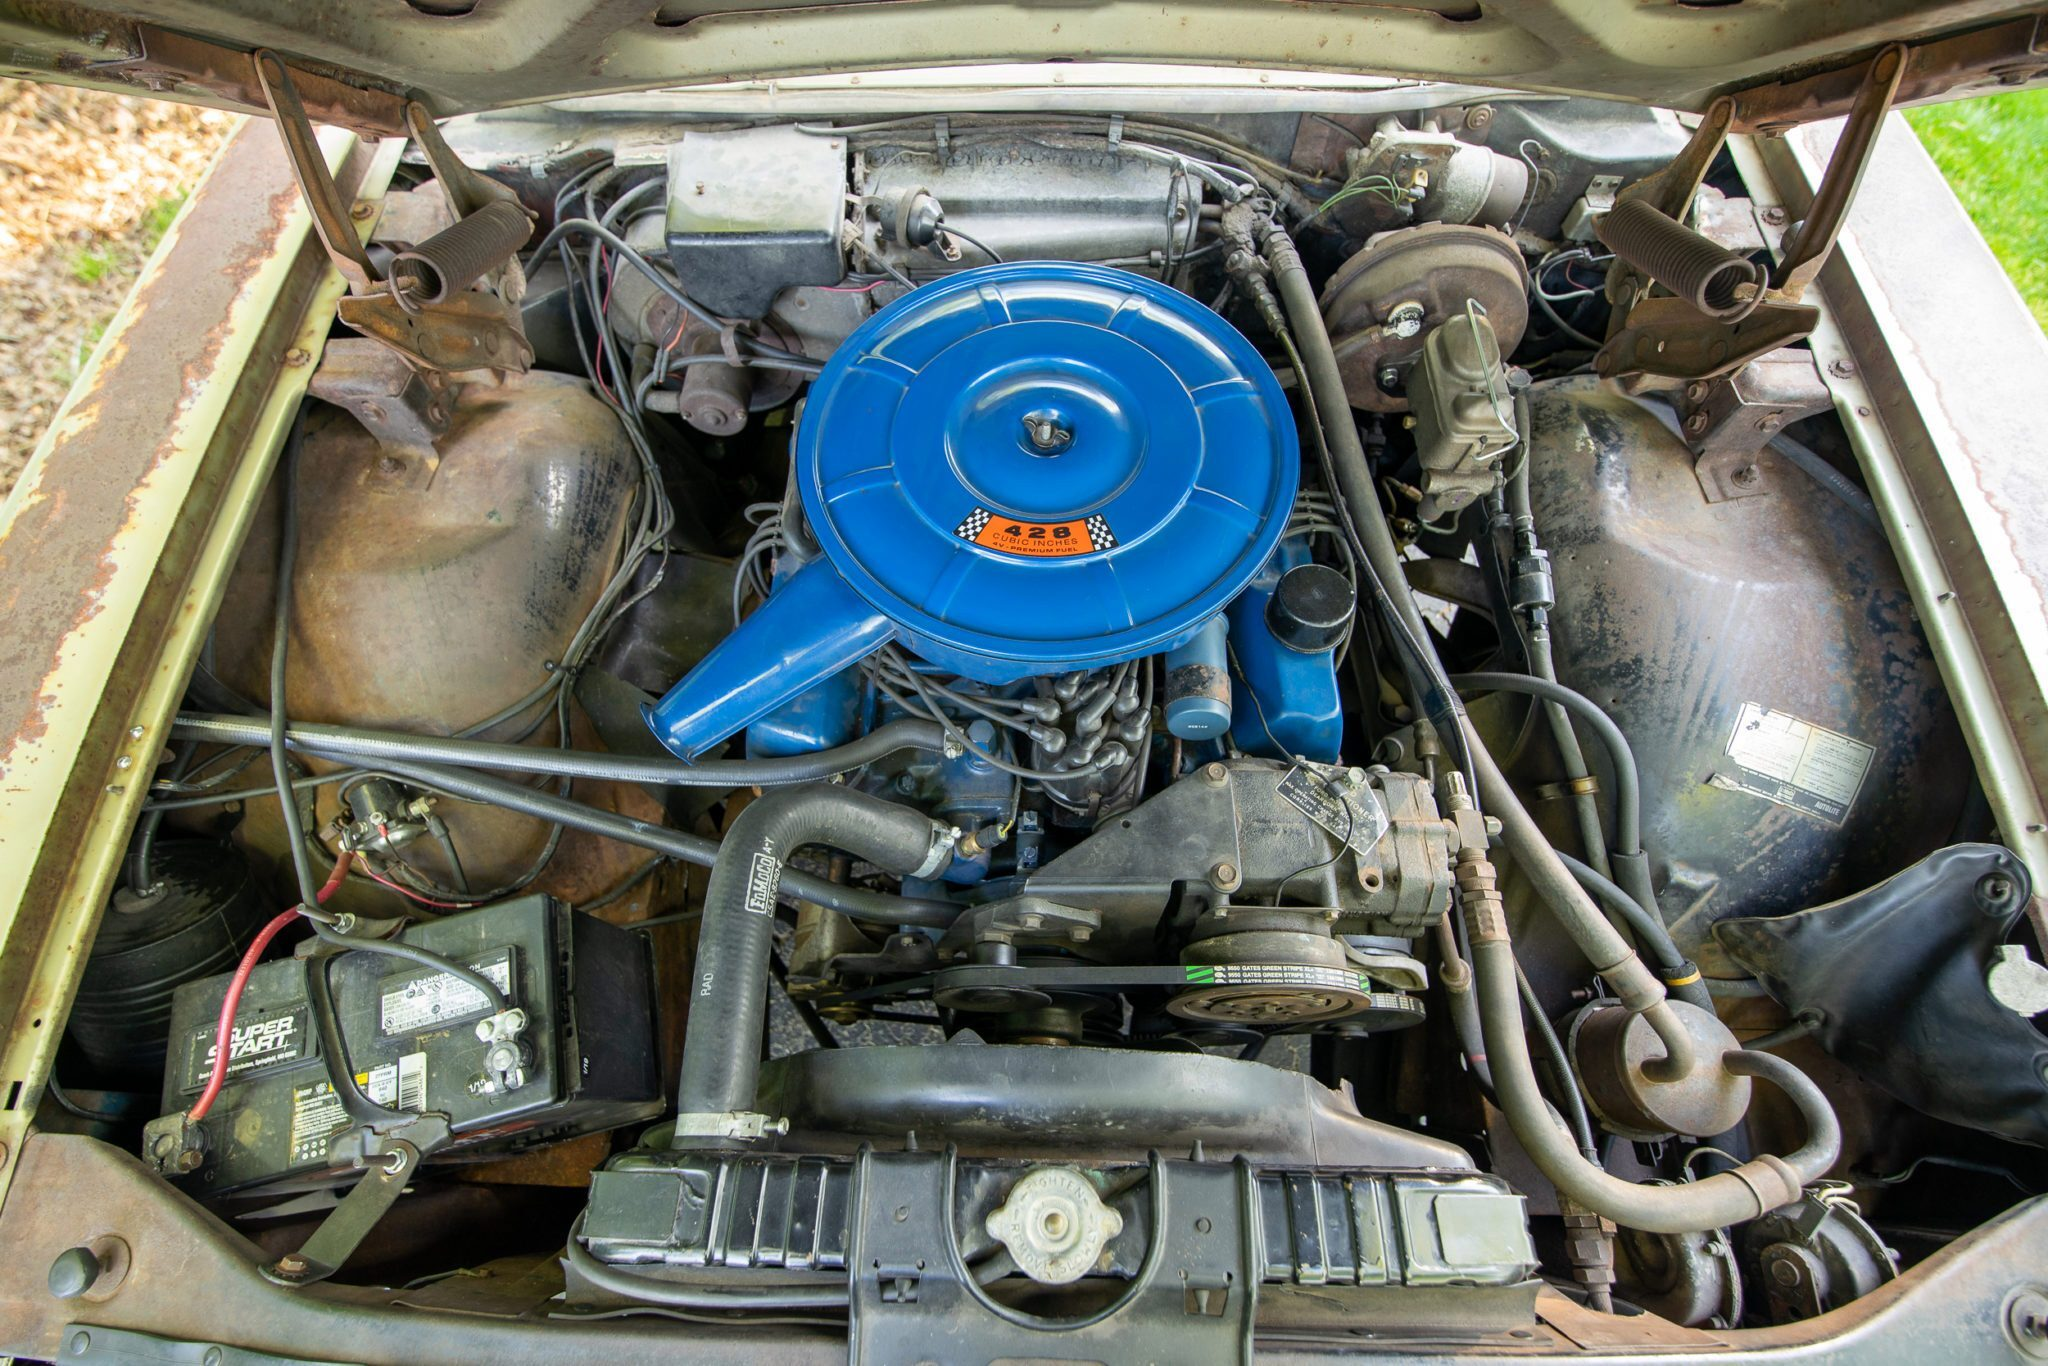 1967 Ford Country Squire Tom Cotter engine